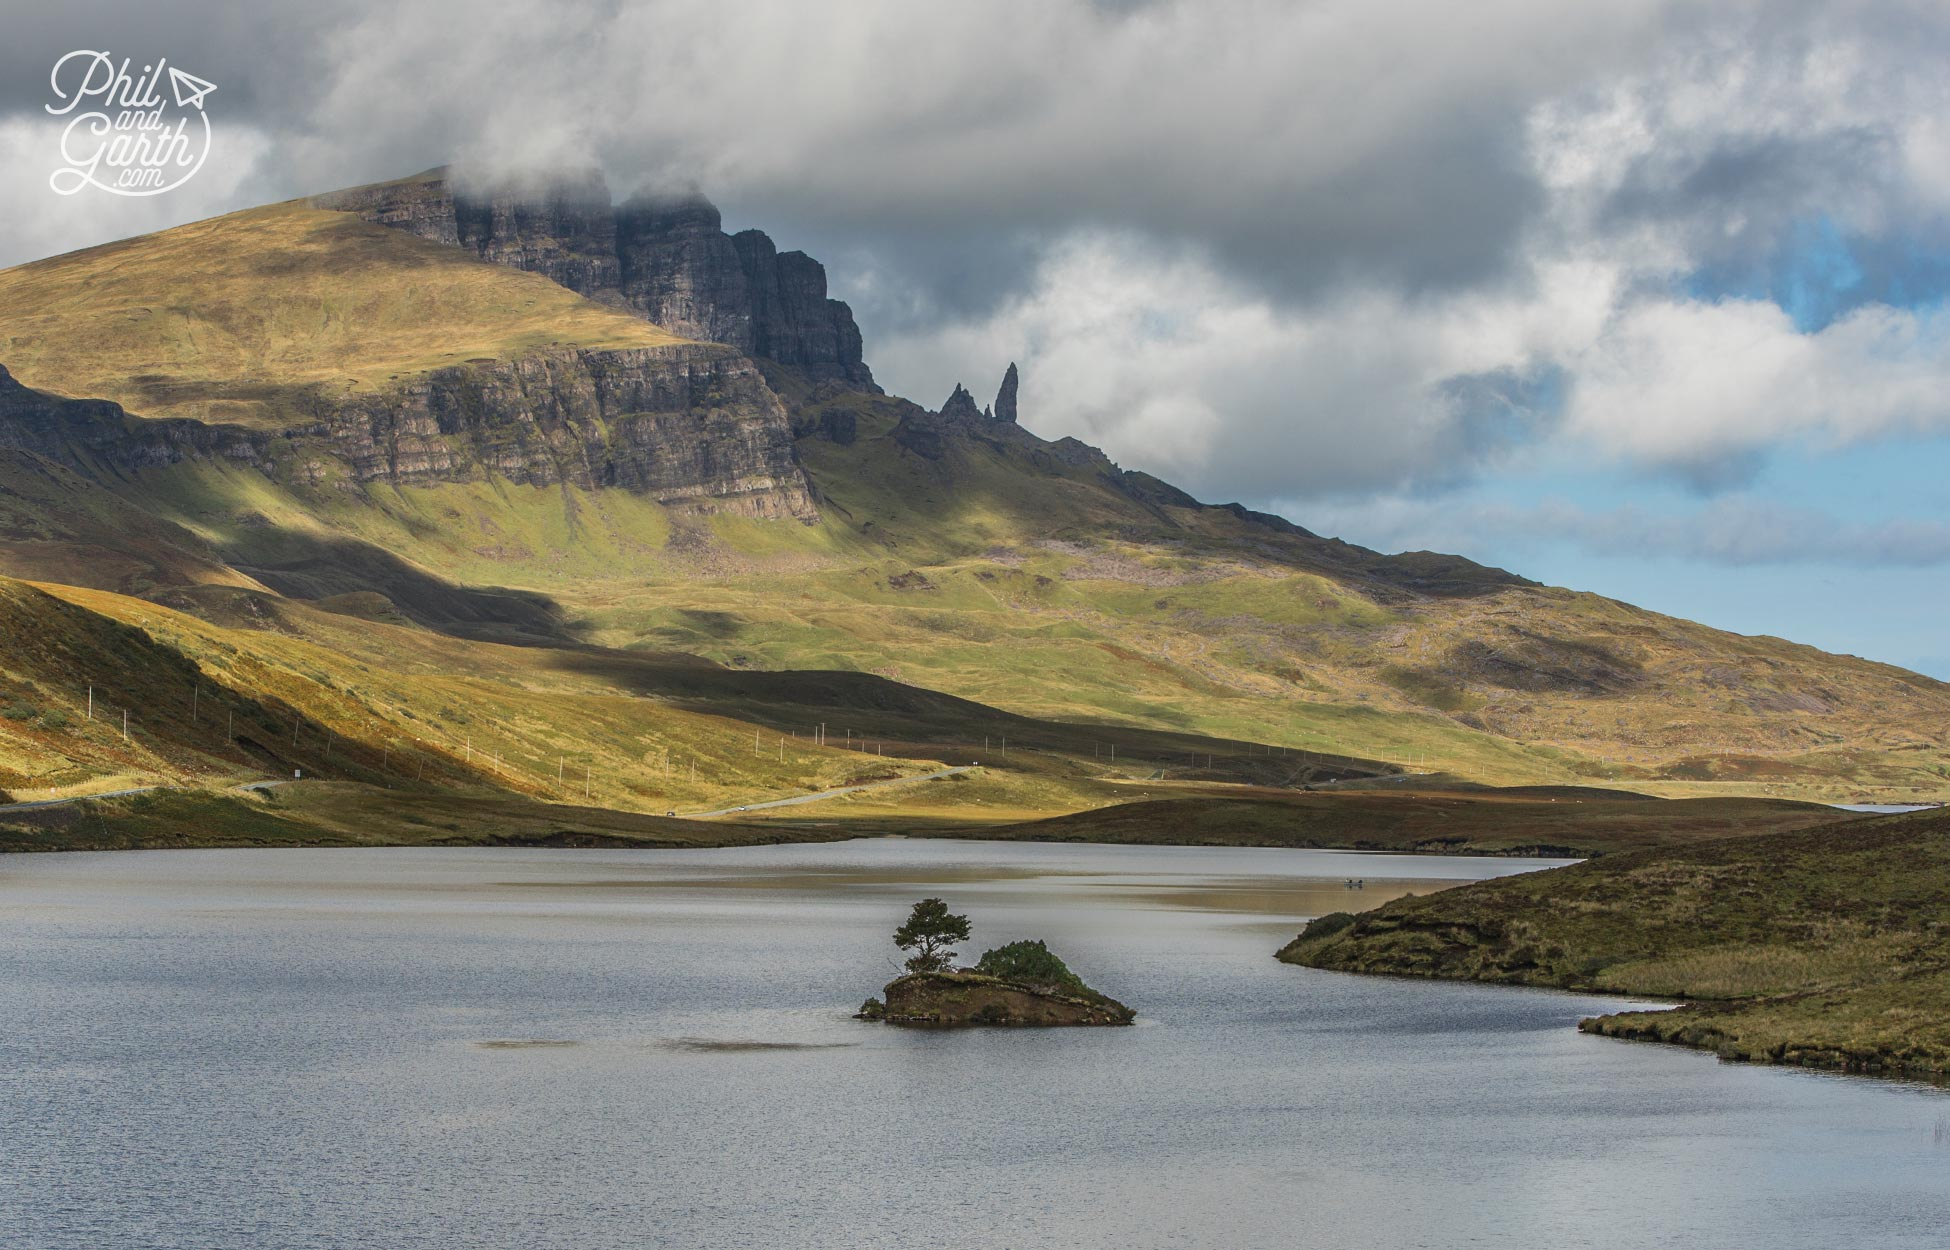 The view across Loch Lethan to the Old Man of Storr